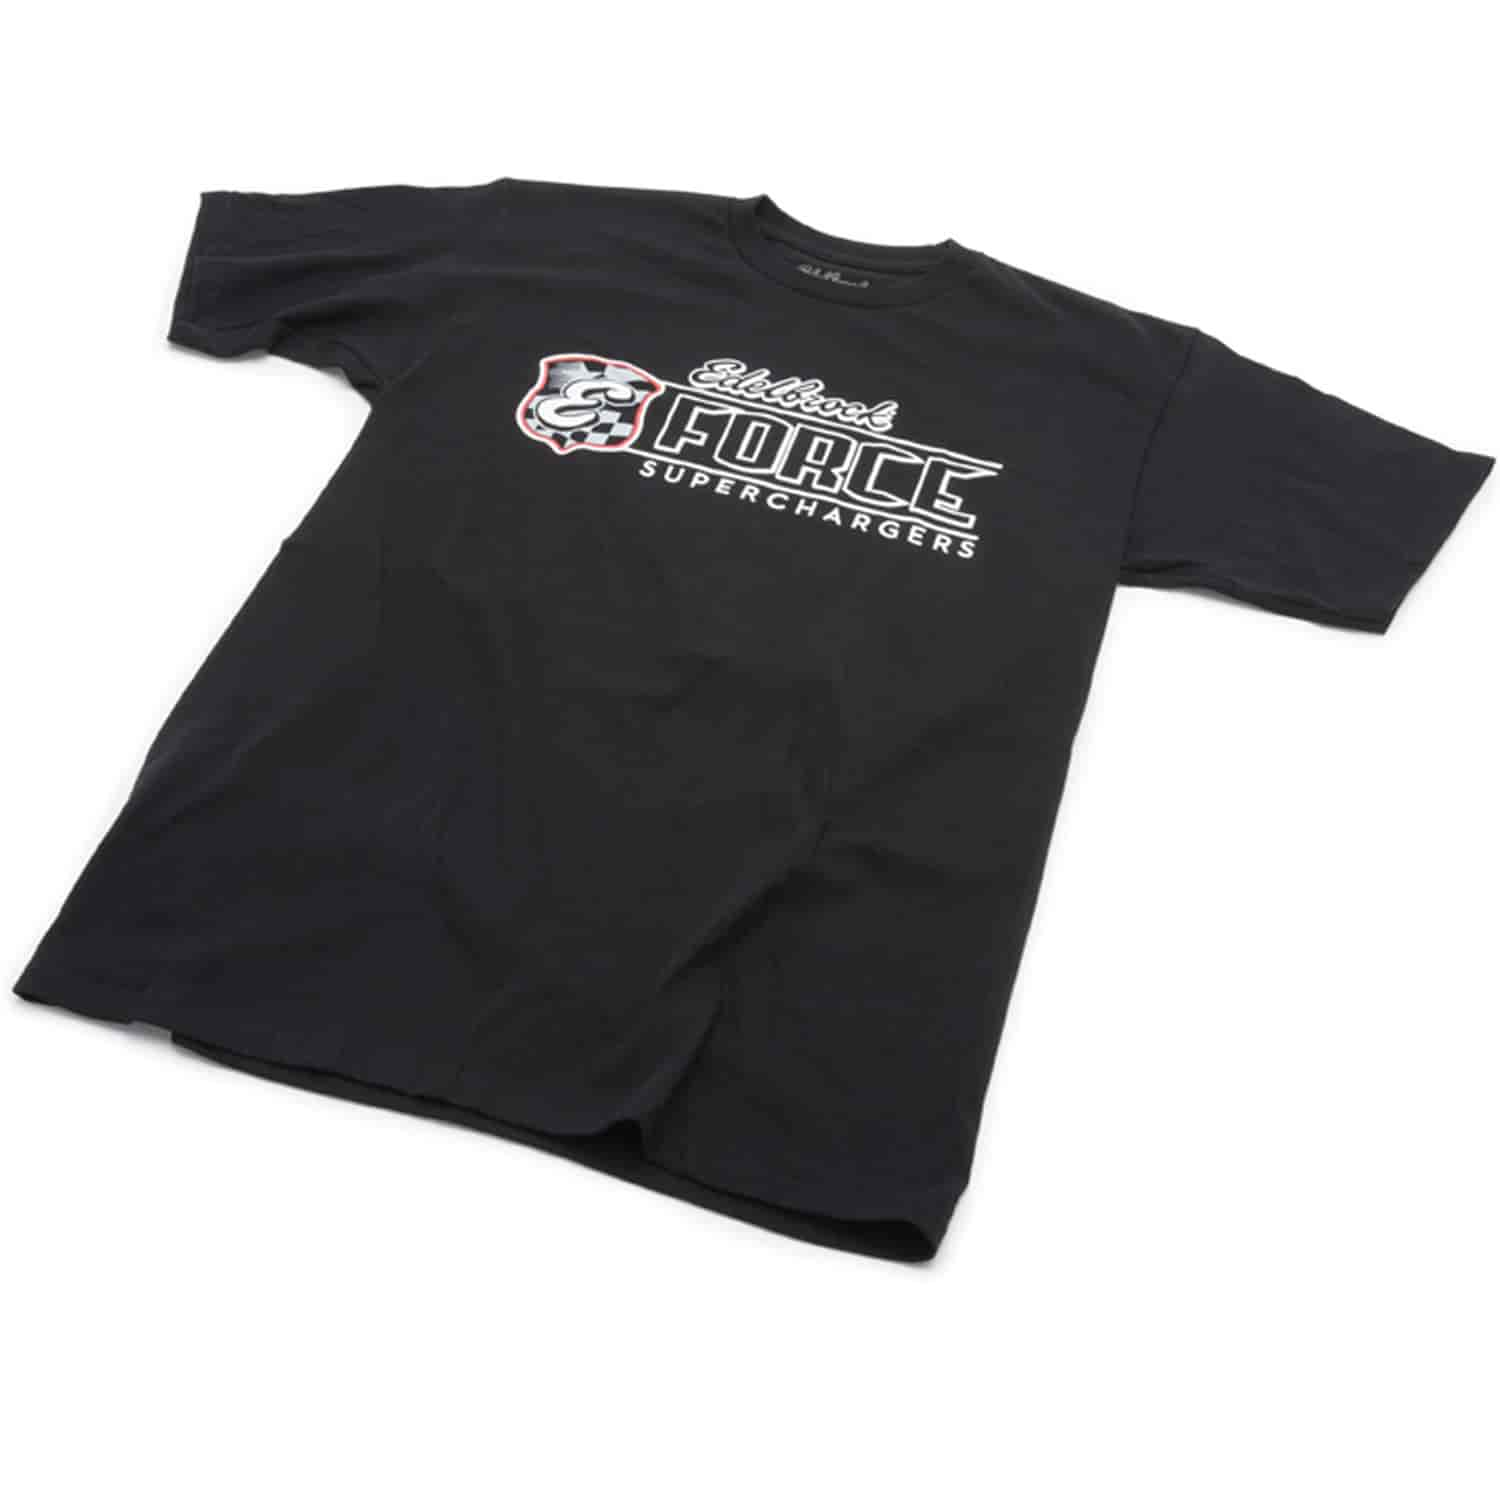 Edelbrock Force Supercharger T-Shirt